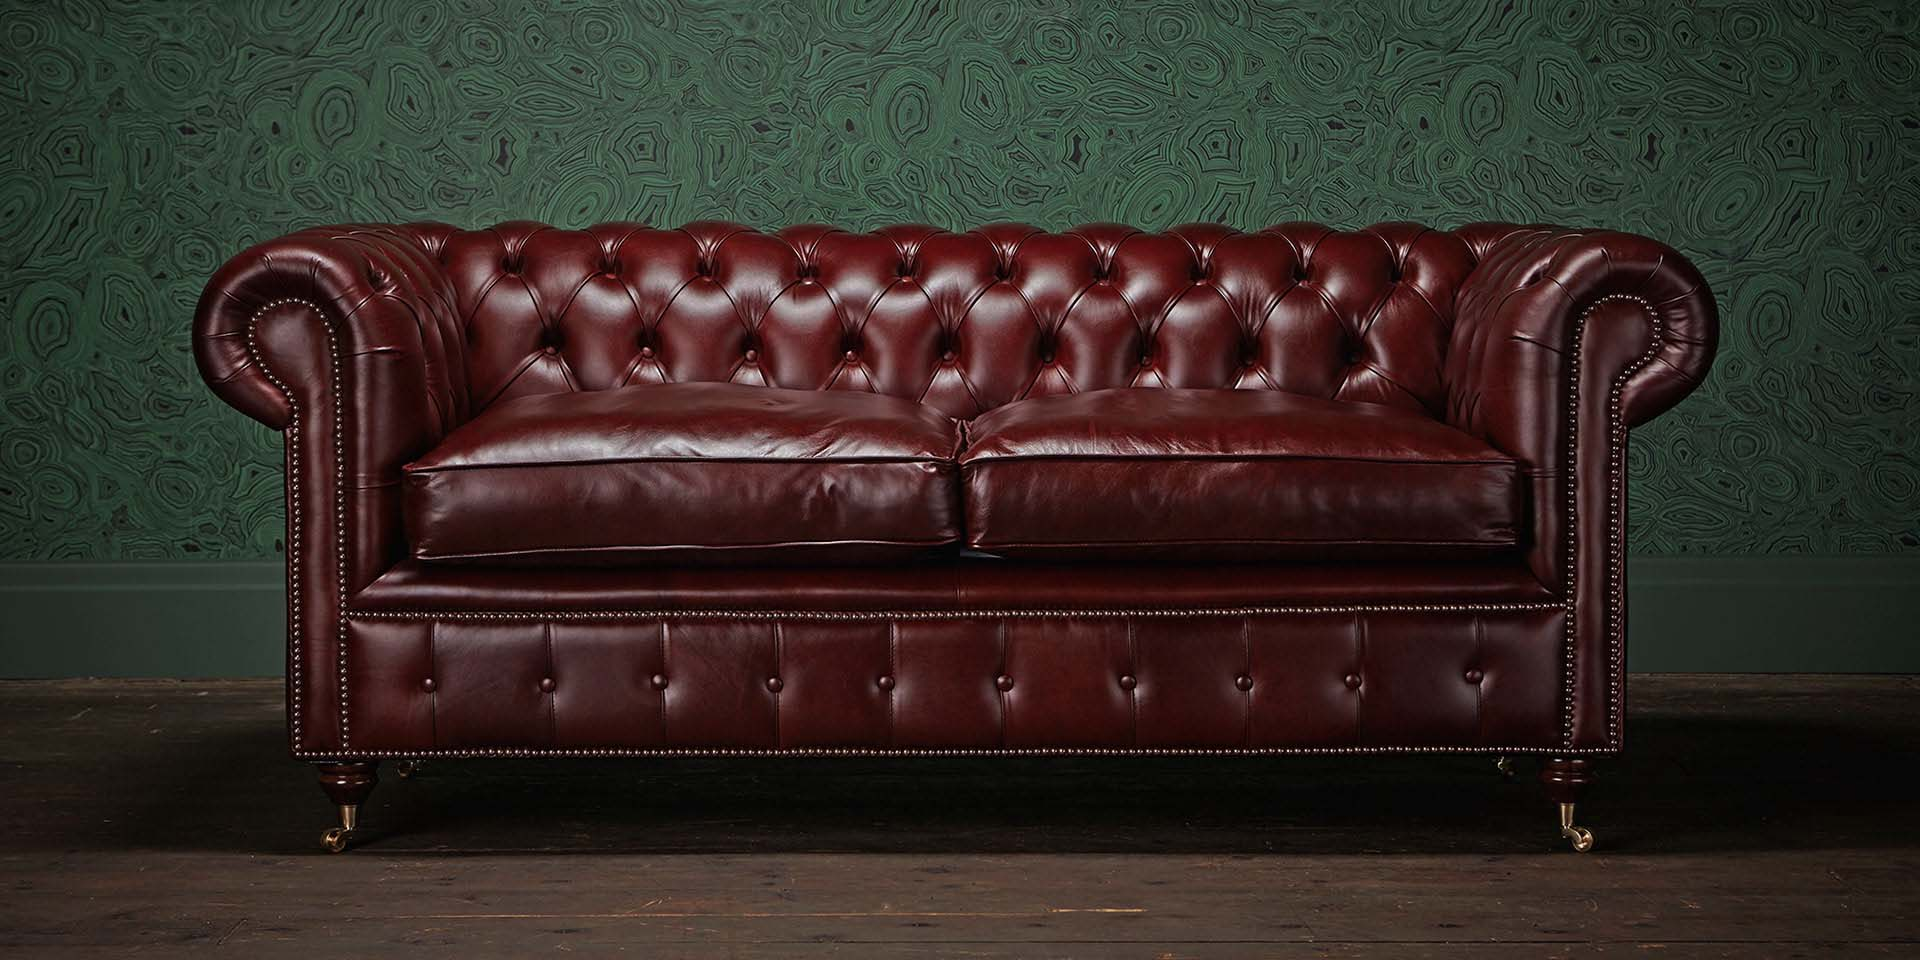 Interior leather chesterfield sofa from: £936.92click here to buy xpswhgt